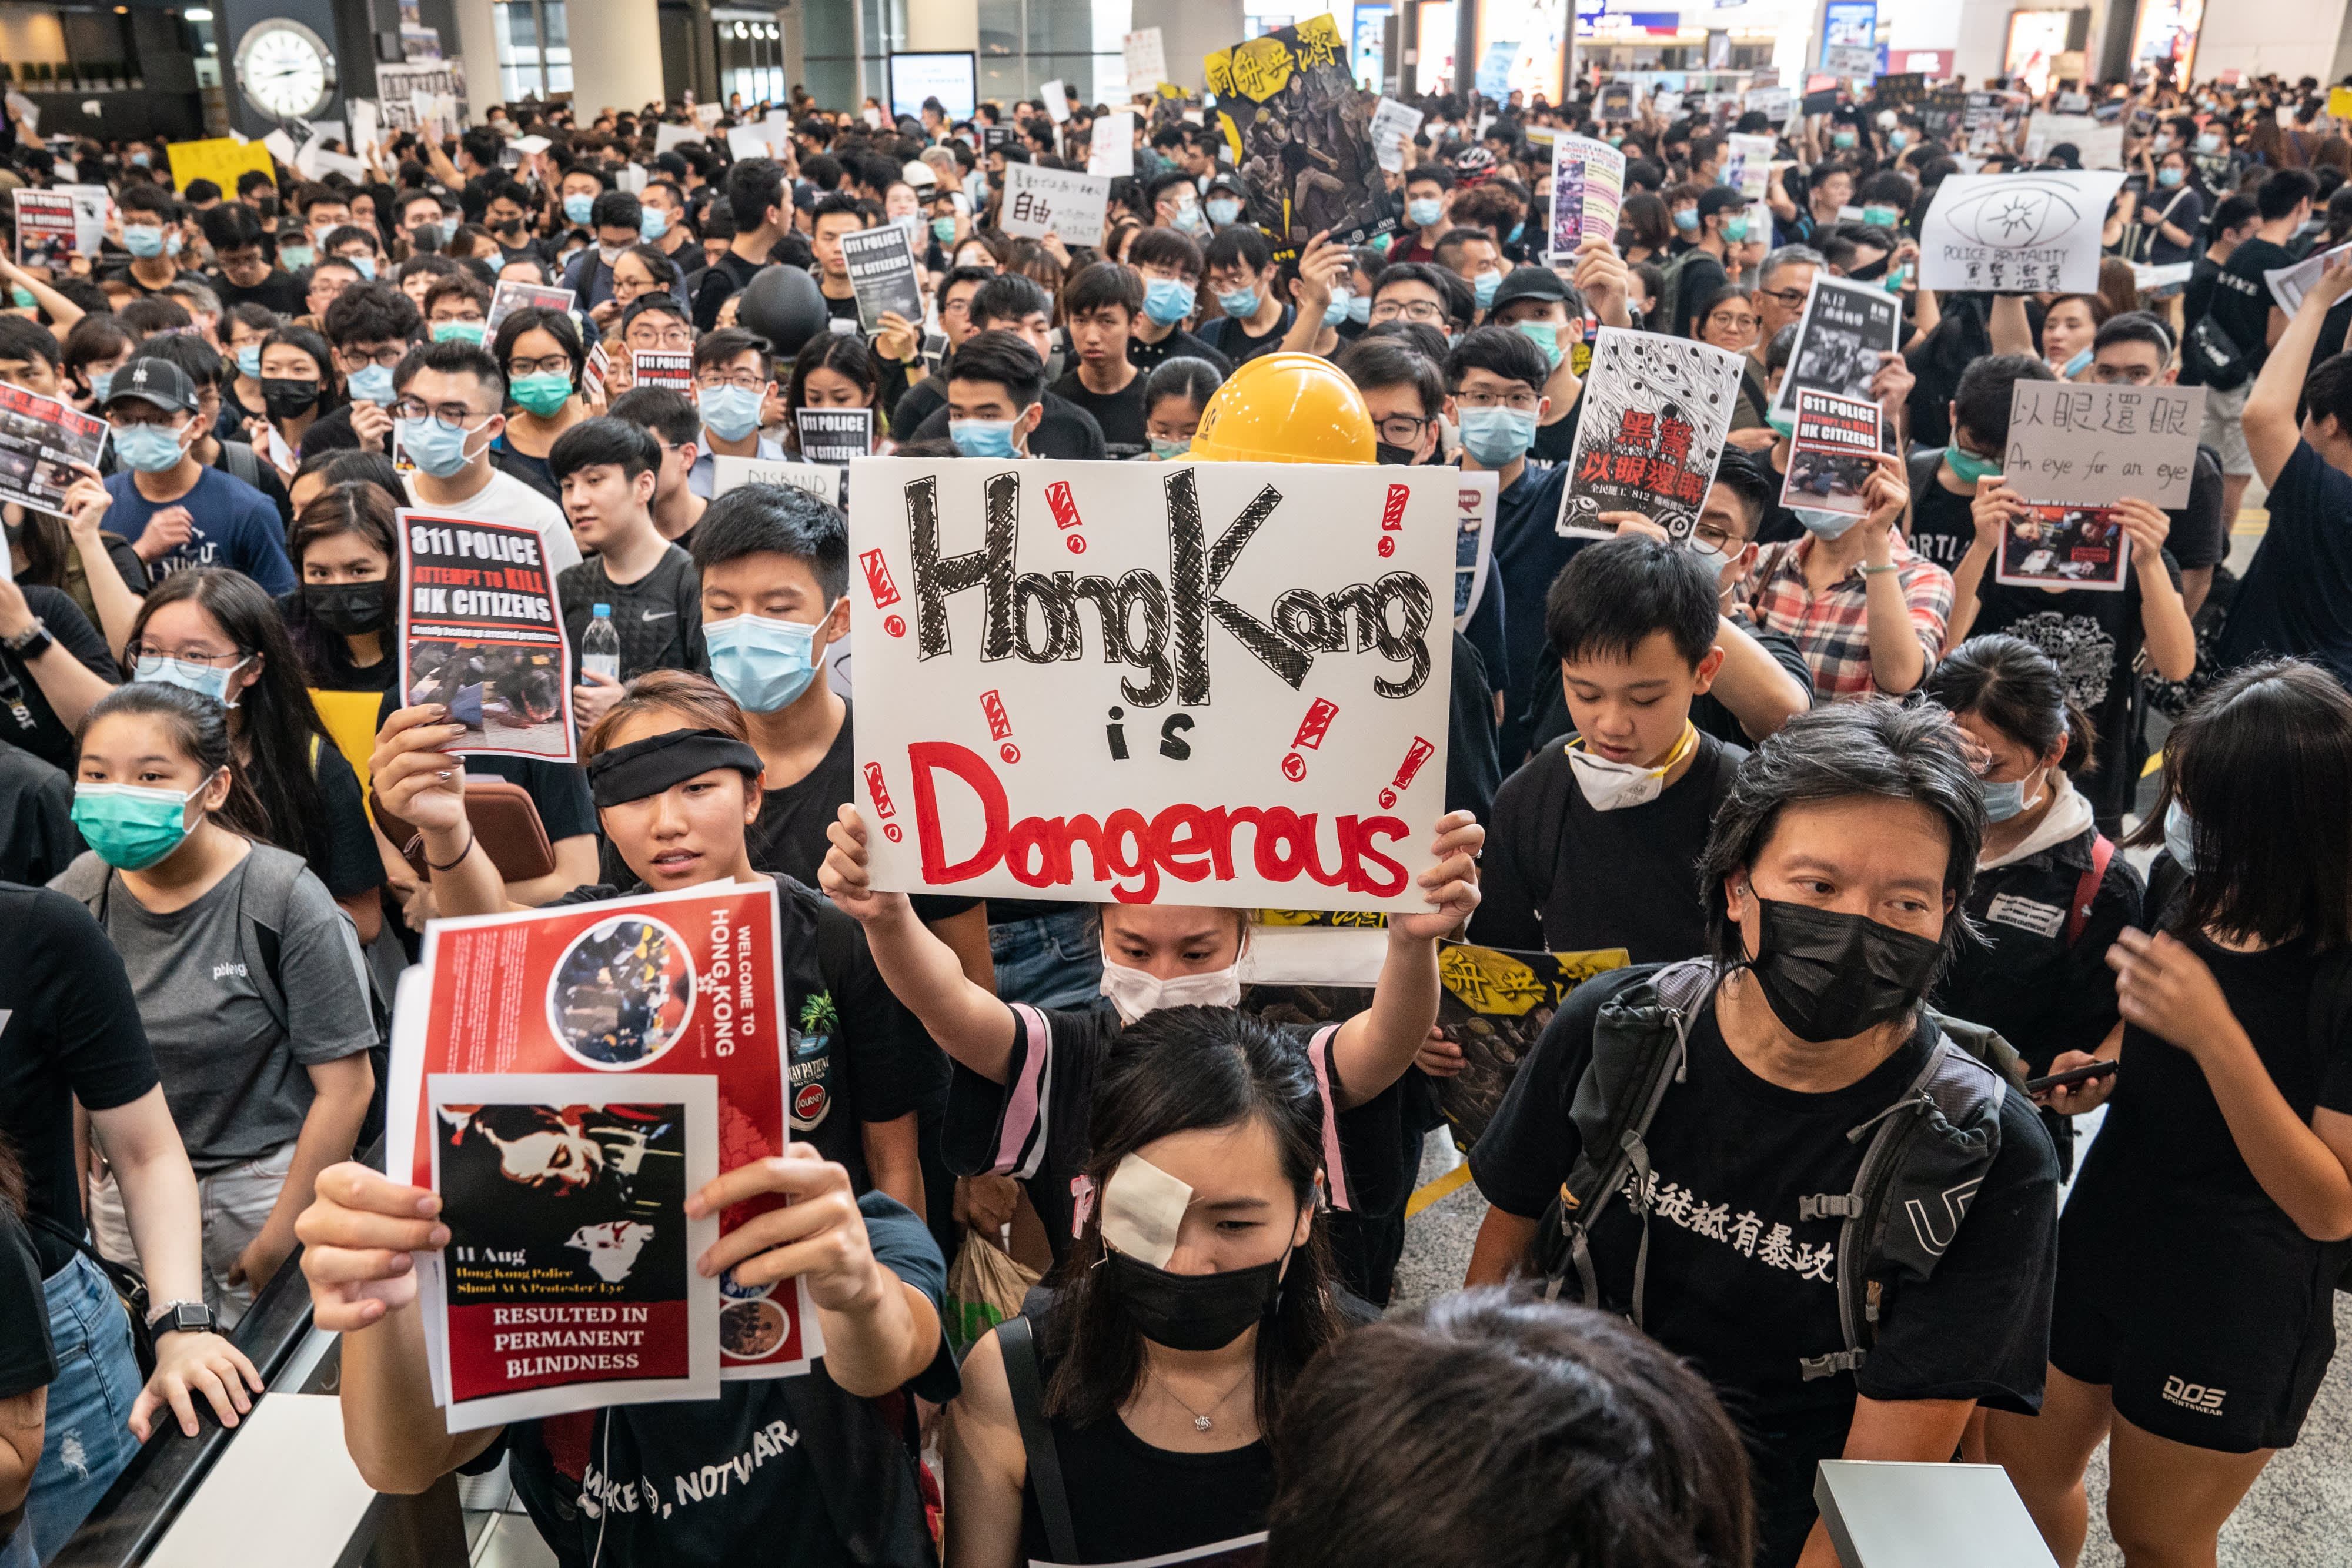 China media: Hong Kong protesters 'asking for self-destruction' as military gathers thumbnail